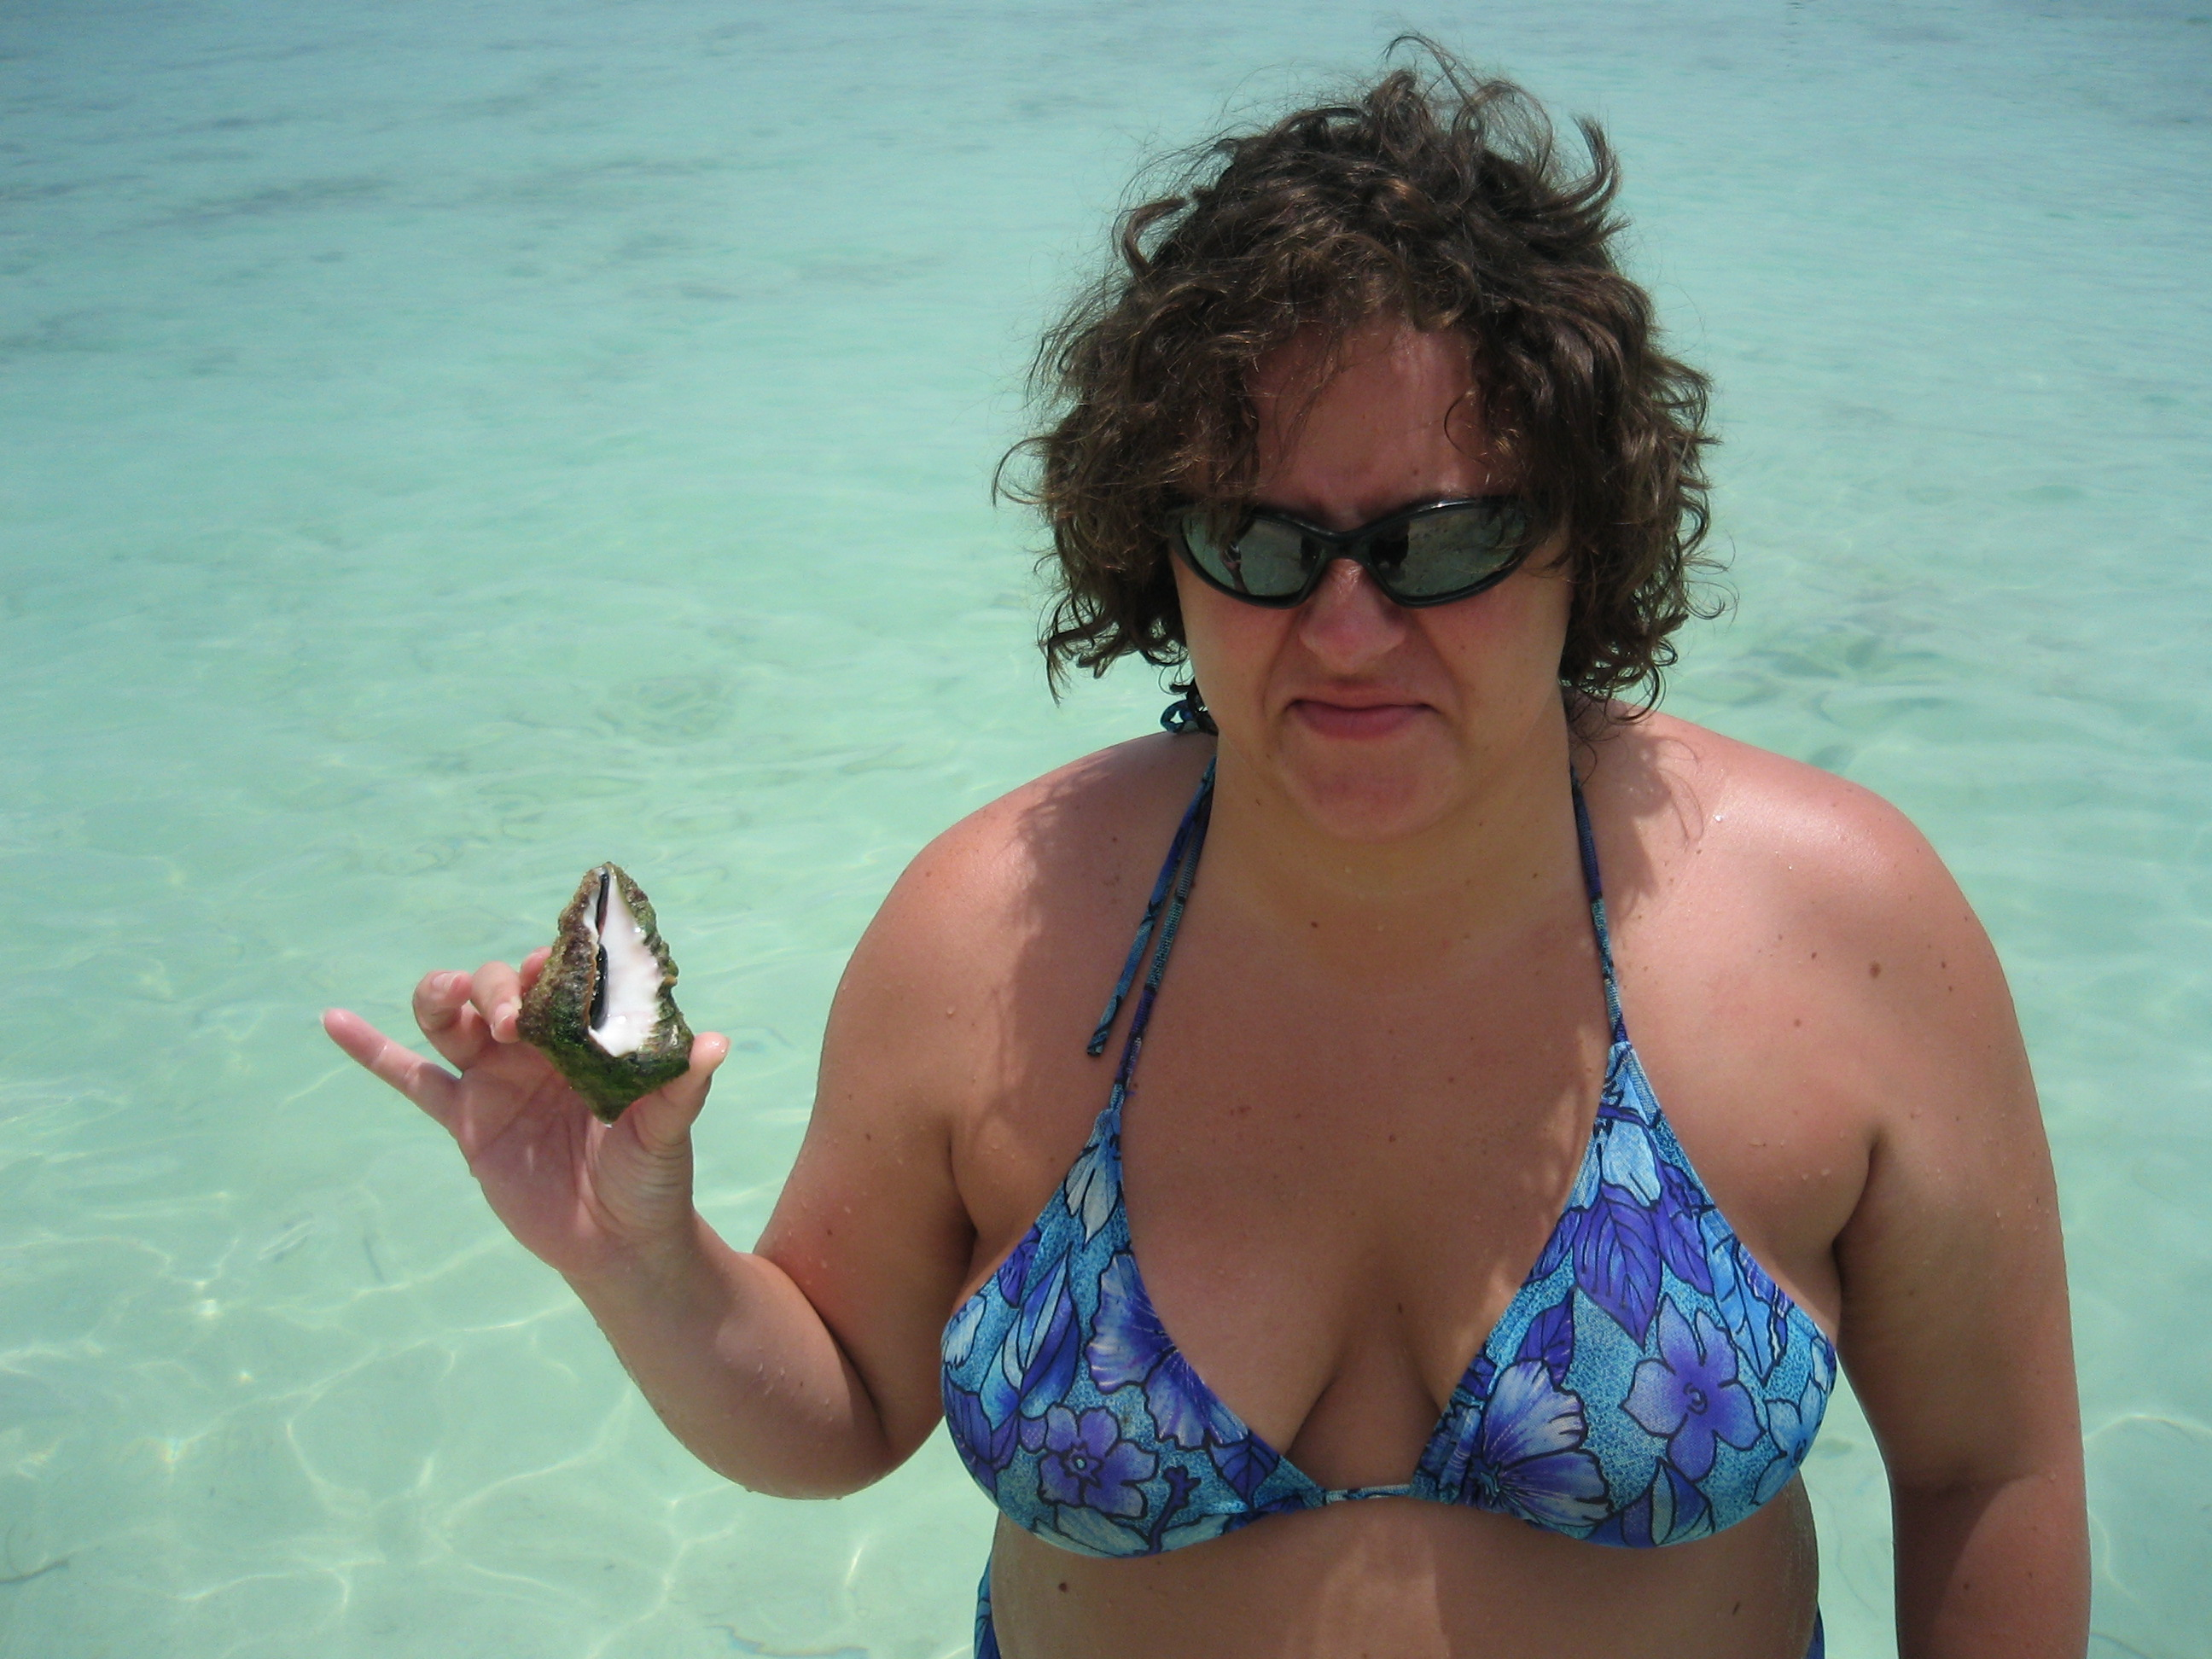 Katie showing her joy at holding the conch at Saona